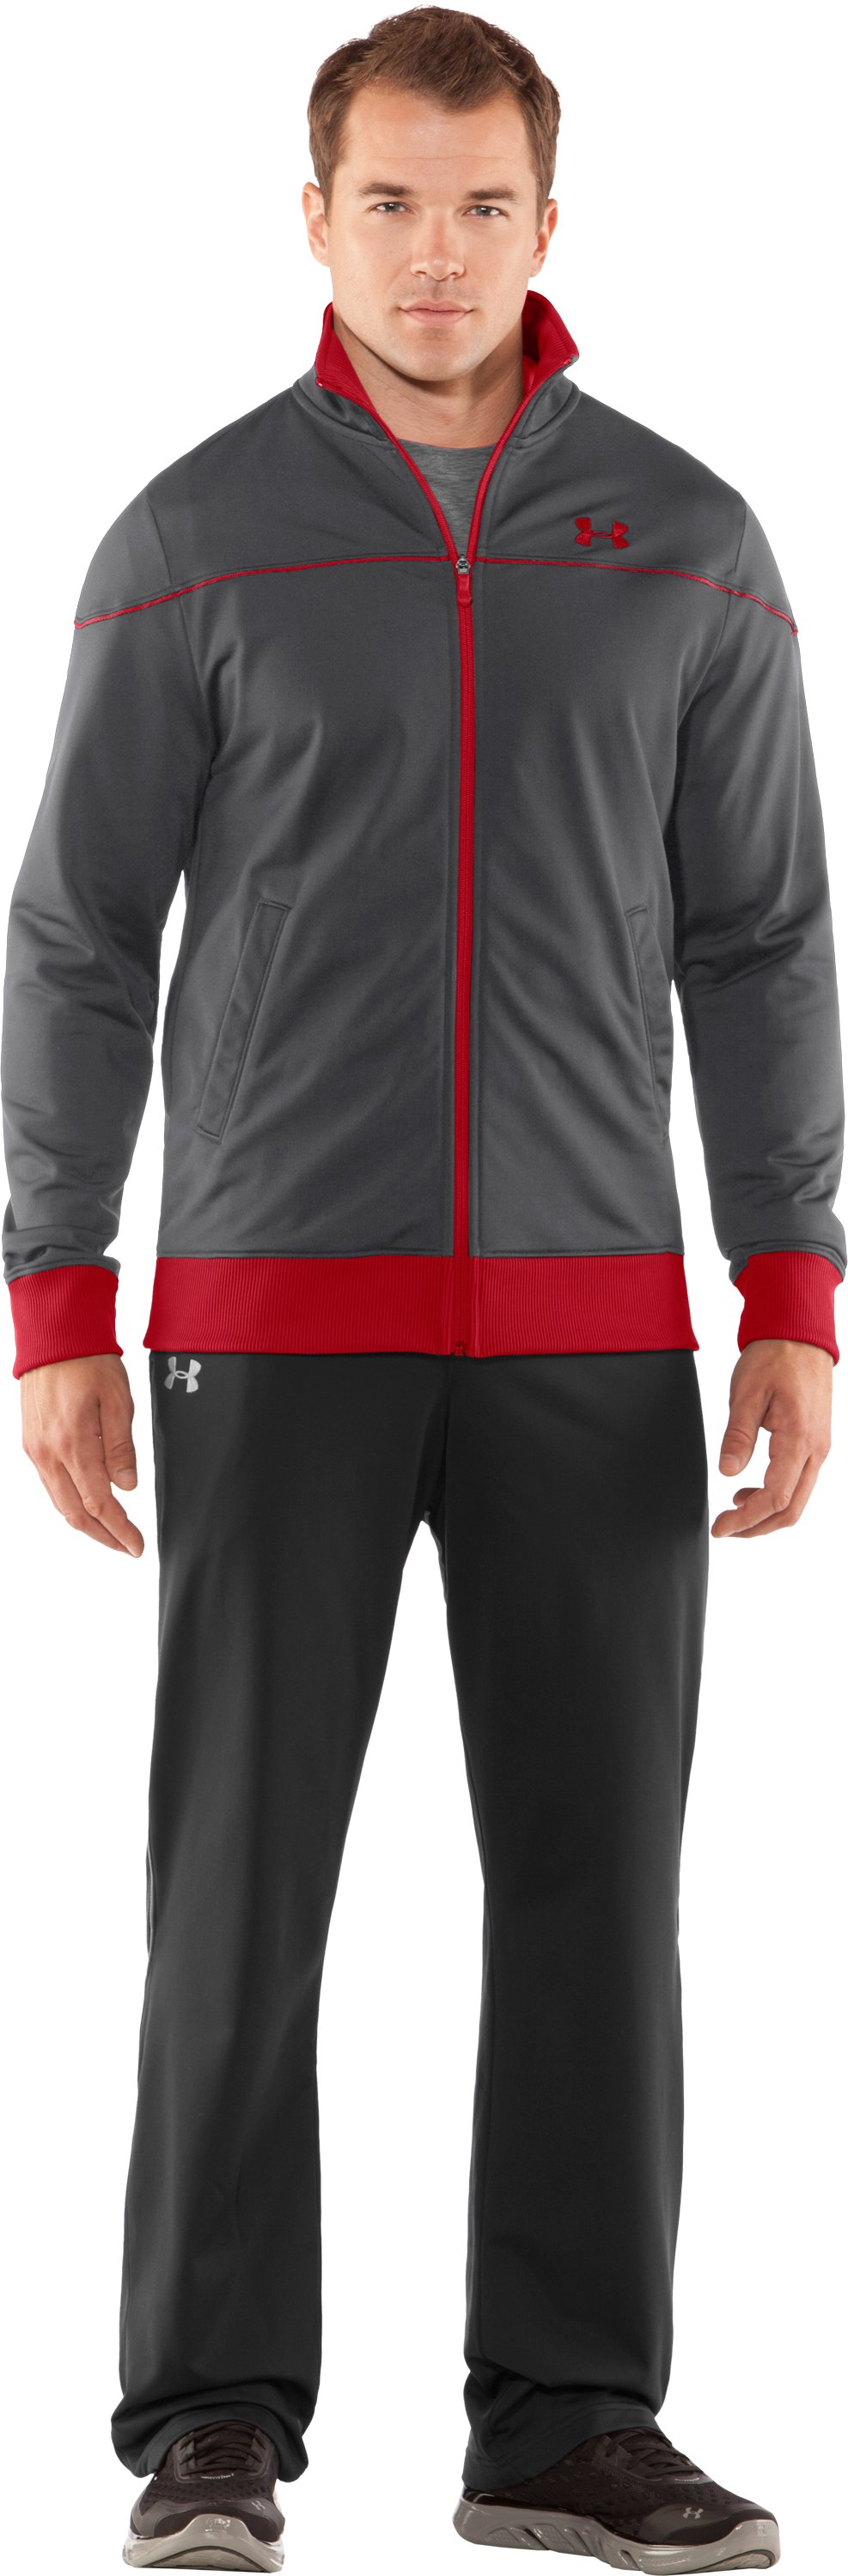 Men's UA Strength Track Jacket, Graphite, zoomed image